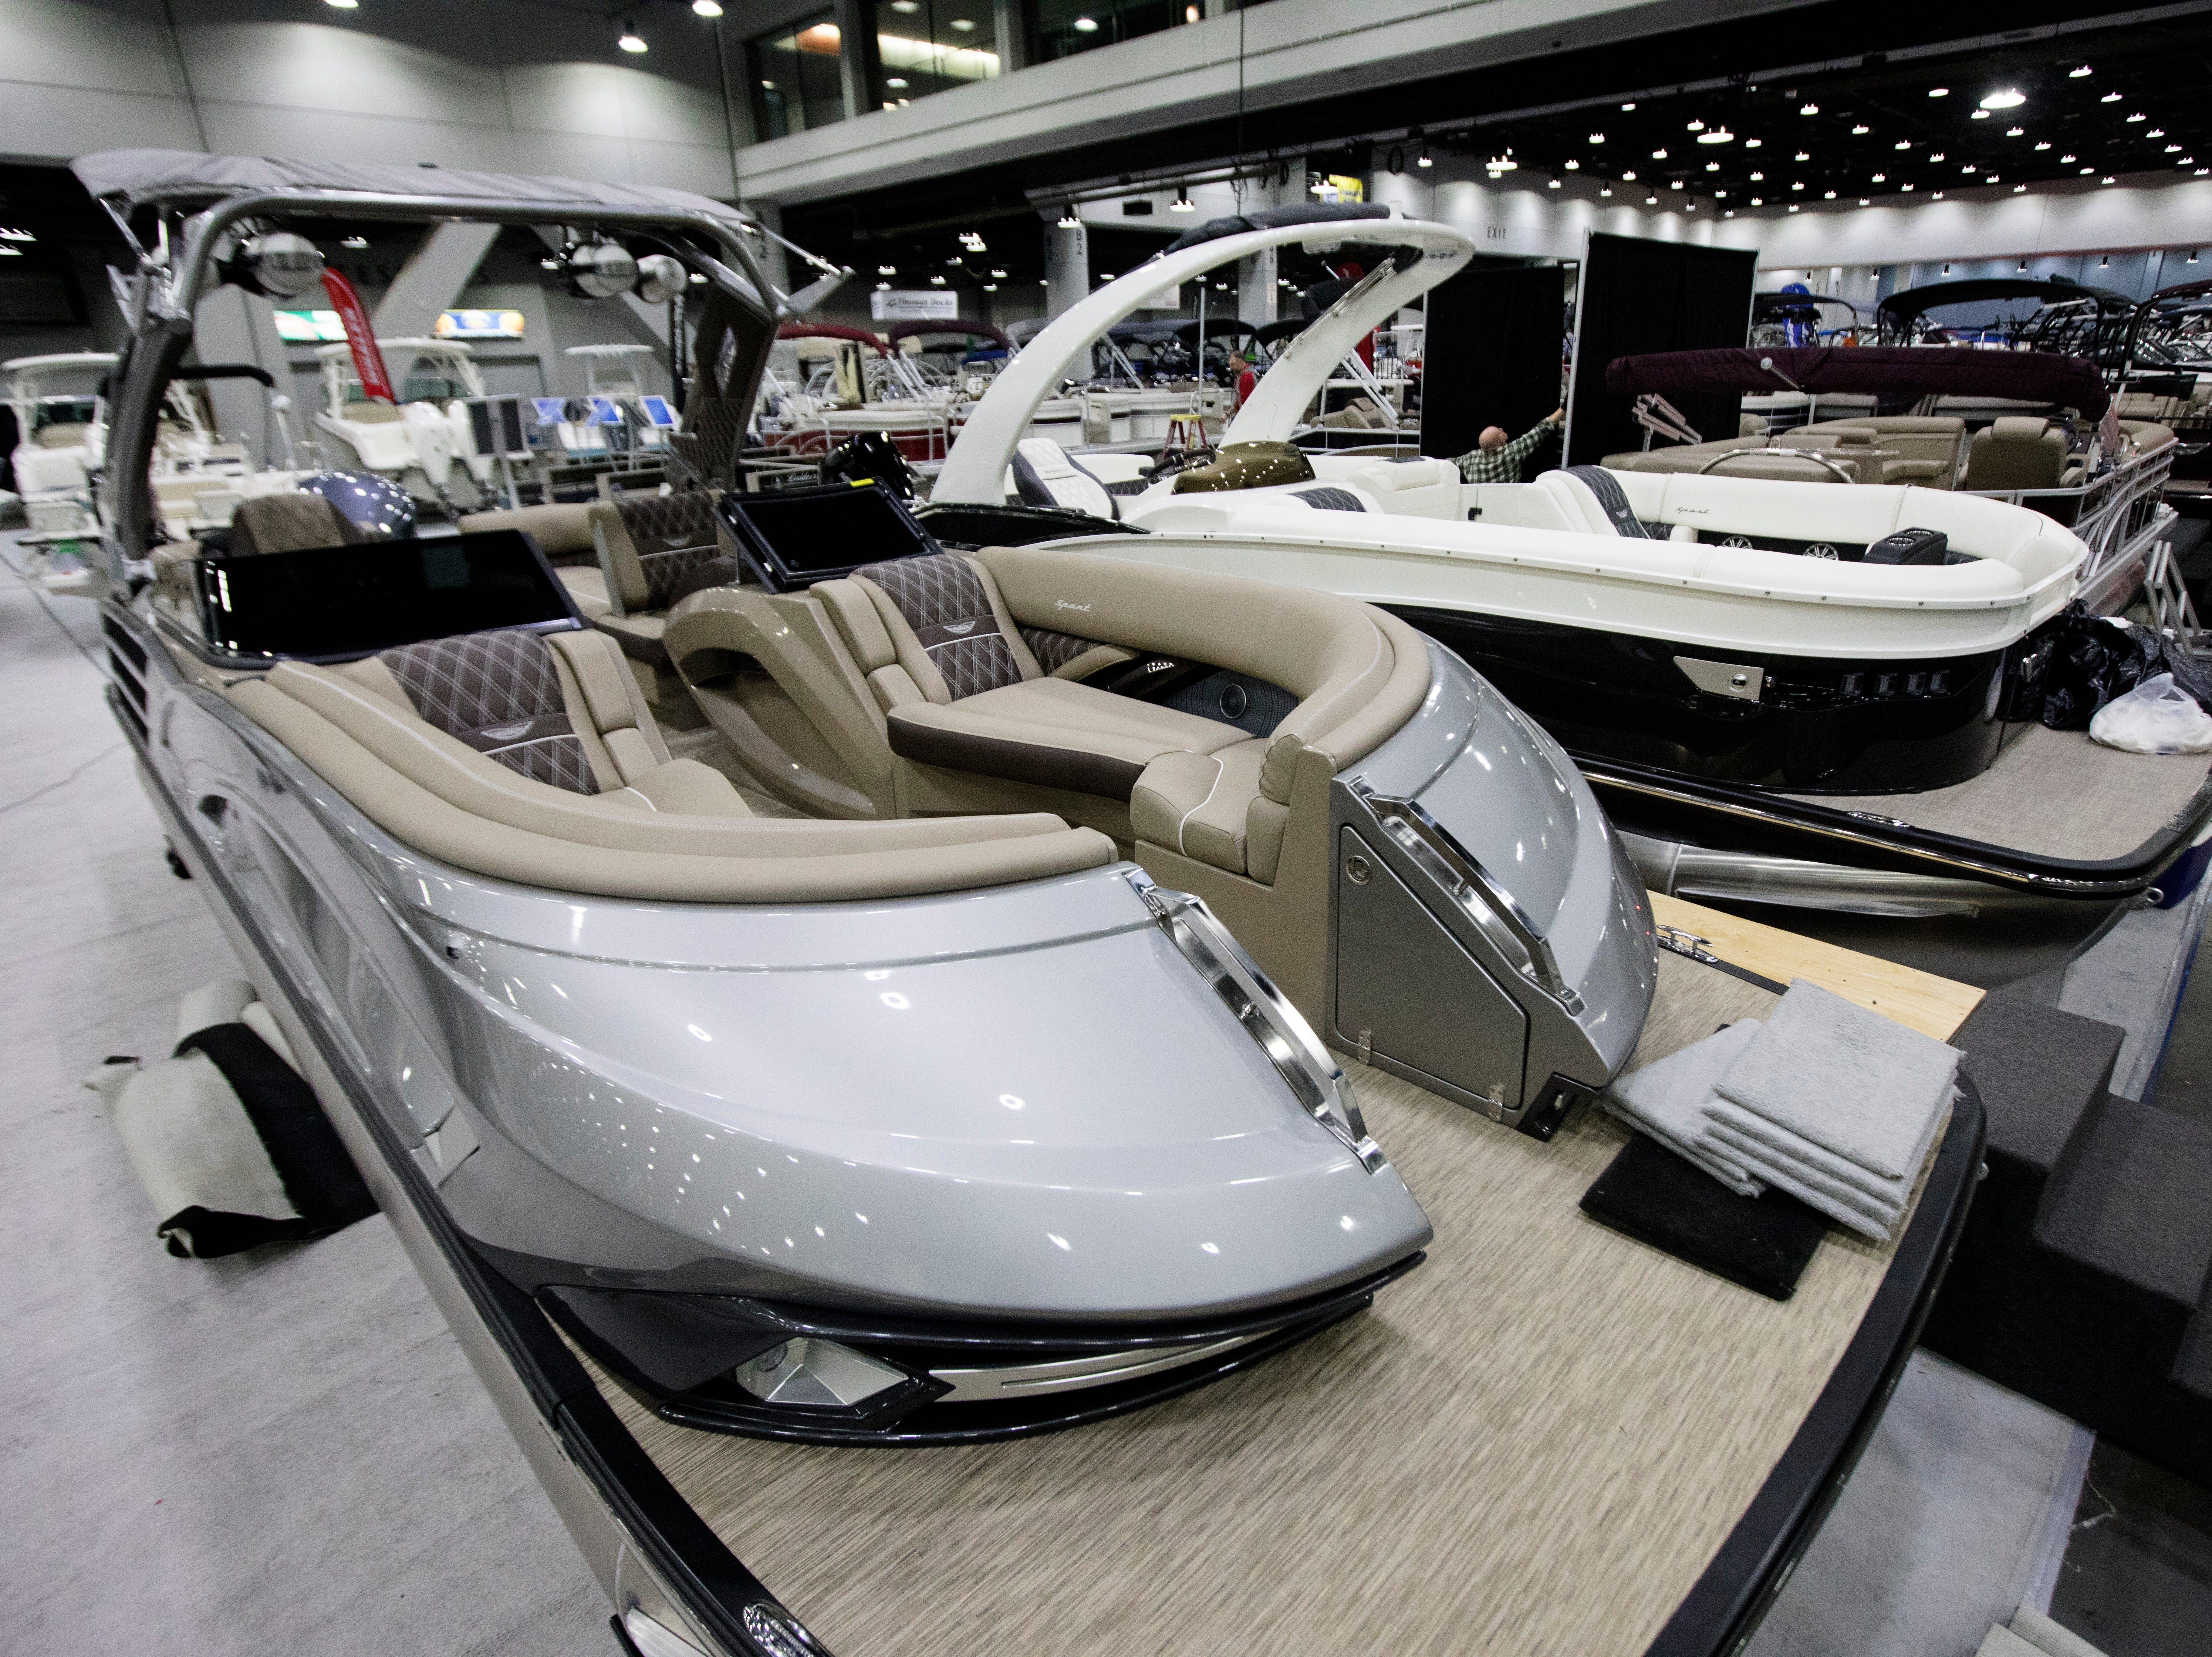 A view of the Bennington's premium 27 QX interior at the annual Cincinnati Travel Sports and Boat Show on Wednesday, Jan. 16, 2018 at the Duke Energy Convention Center in Downtown Cincinnati. The Bennignton's Premuim 27 QX MSRB is around $300,000.